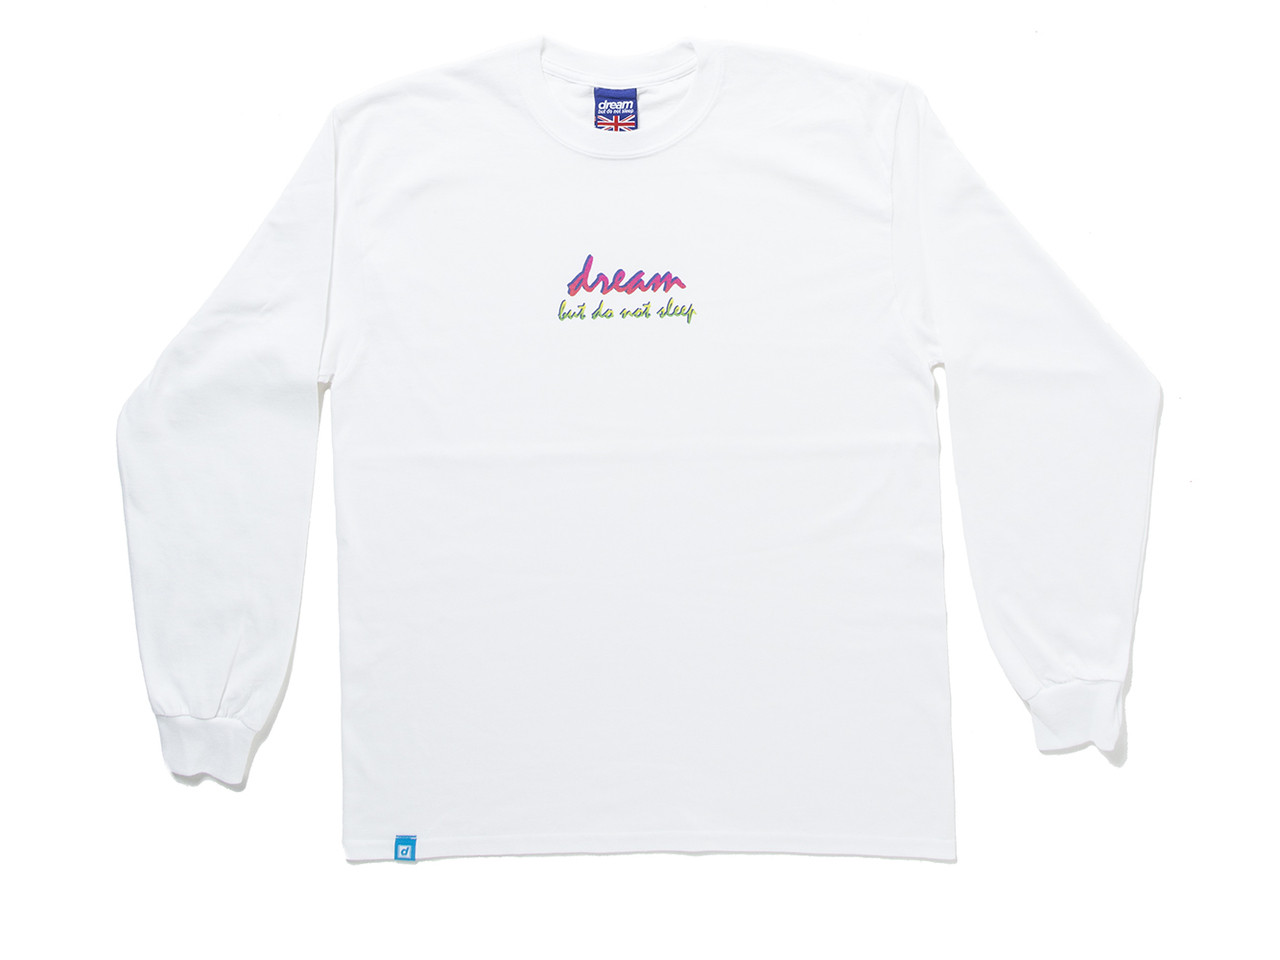 90s Logo Design On White Long Sleeved T-shirt